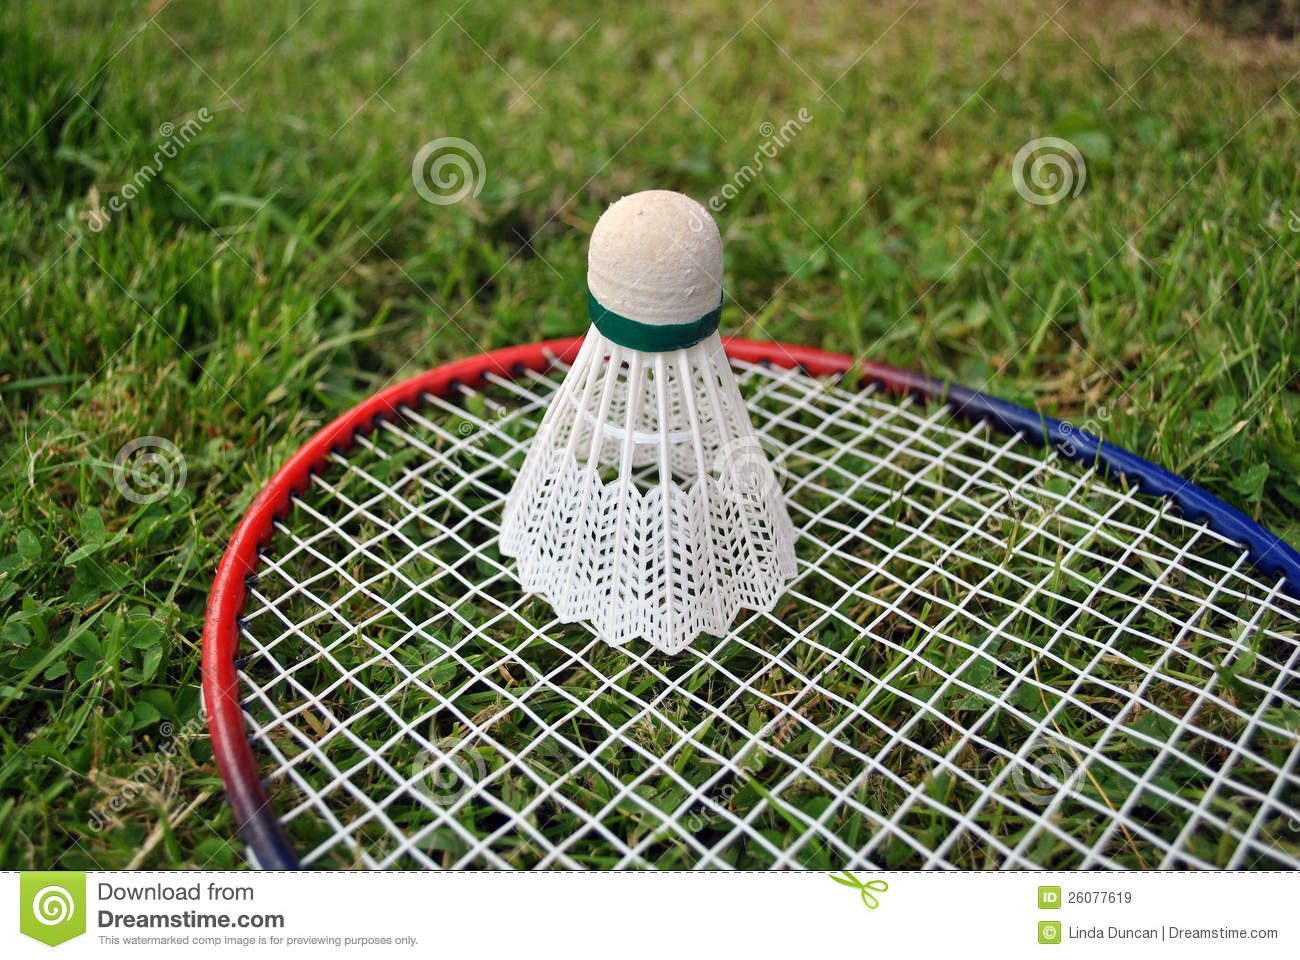 how to make badminton court on grass